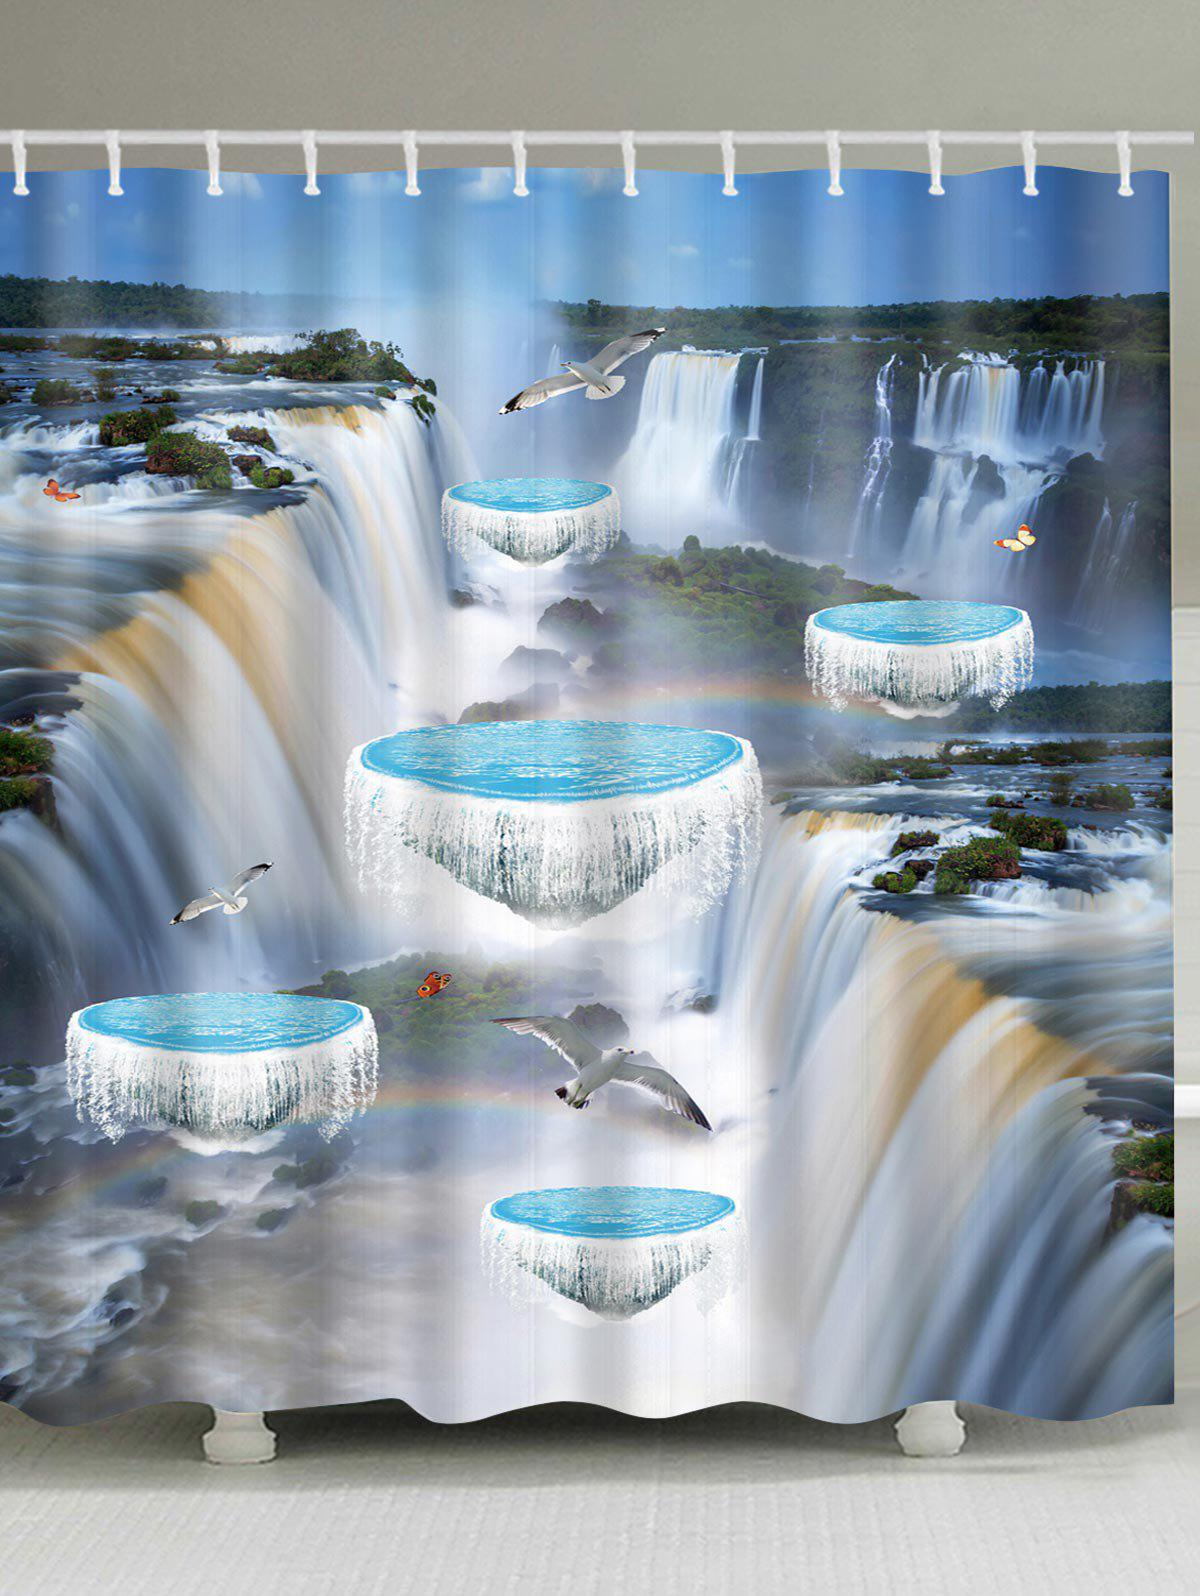 3D Falls Flying Birds Print Bath Shower Curtain - BUTTERFLY BLUE W71 INCH * L79 INCH